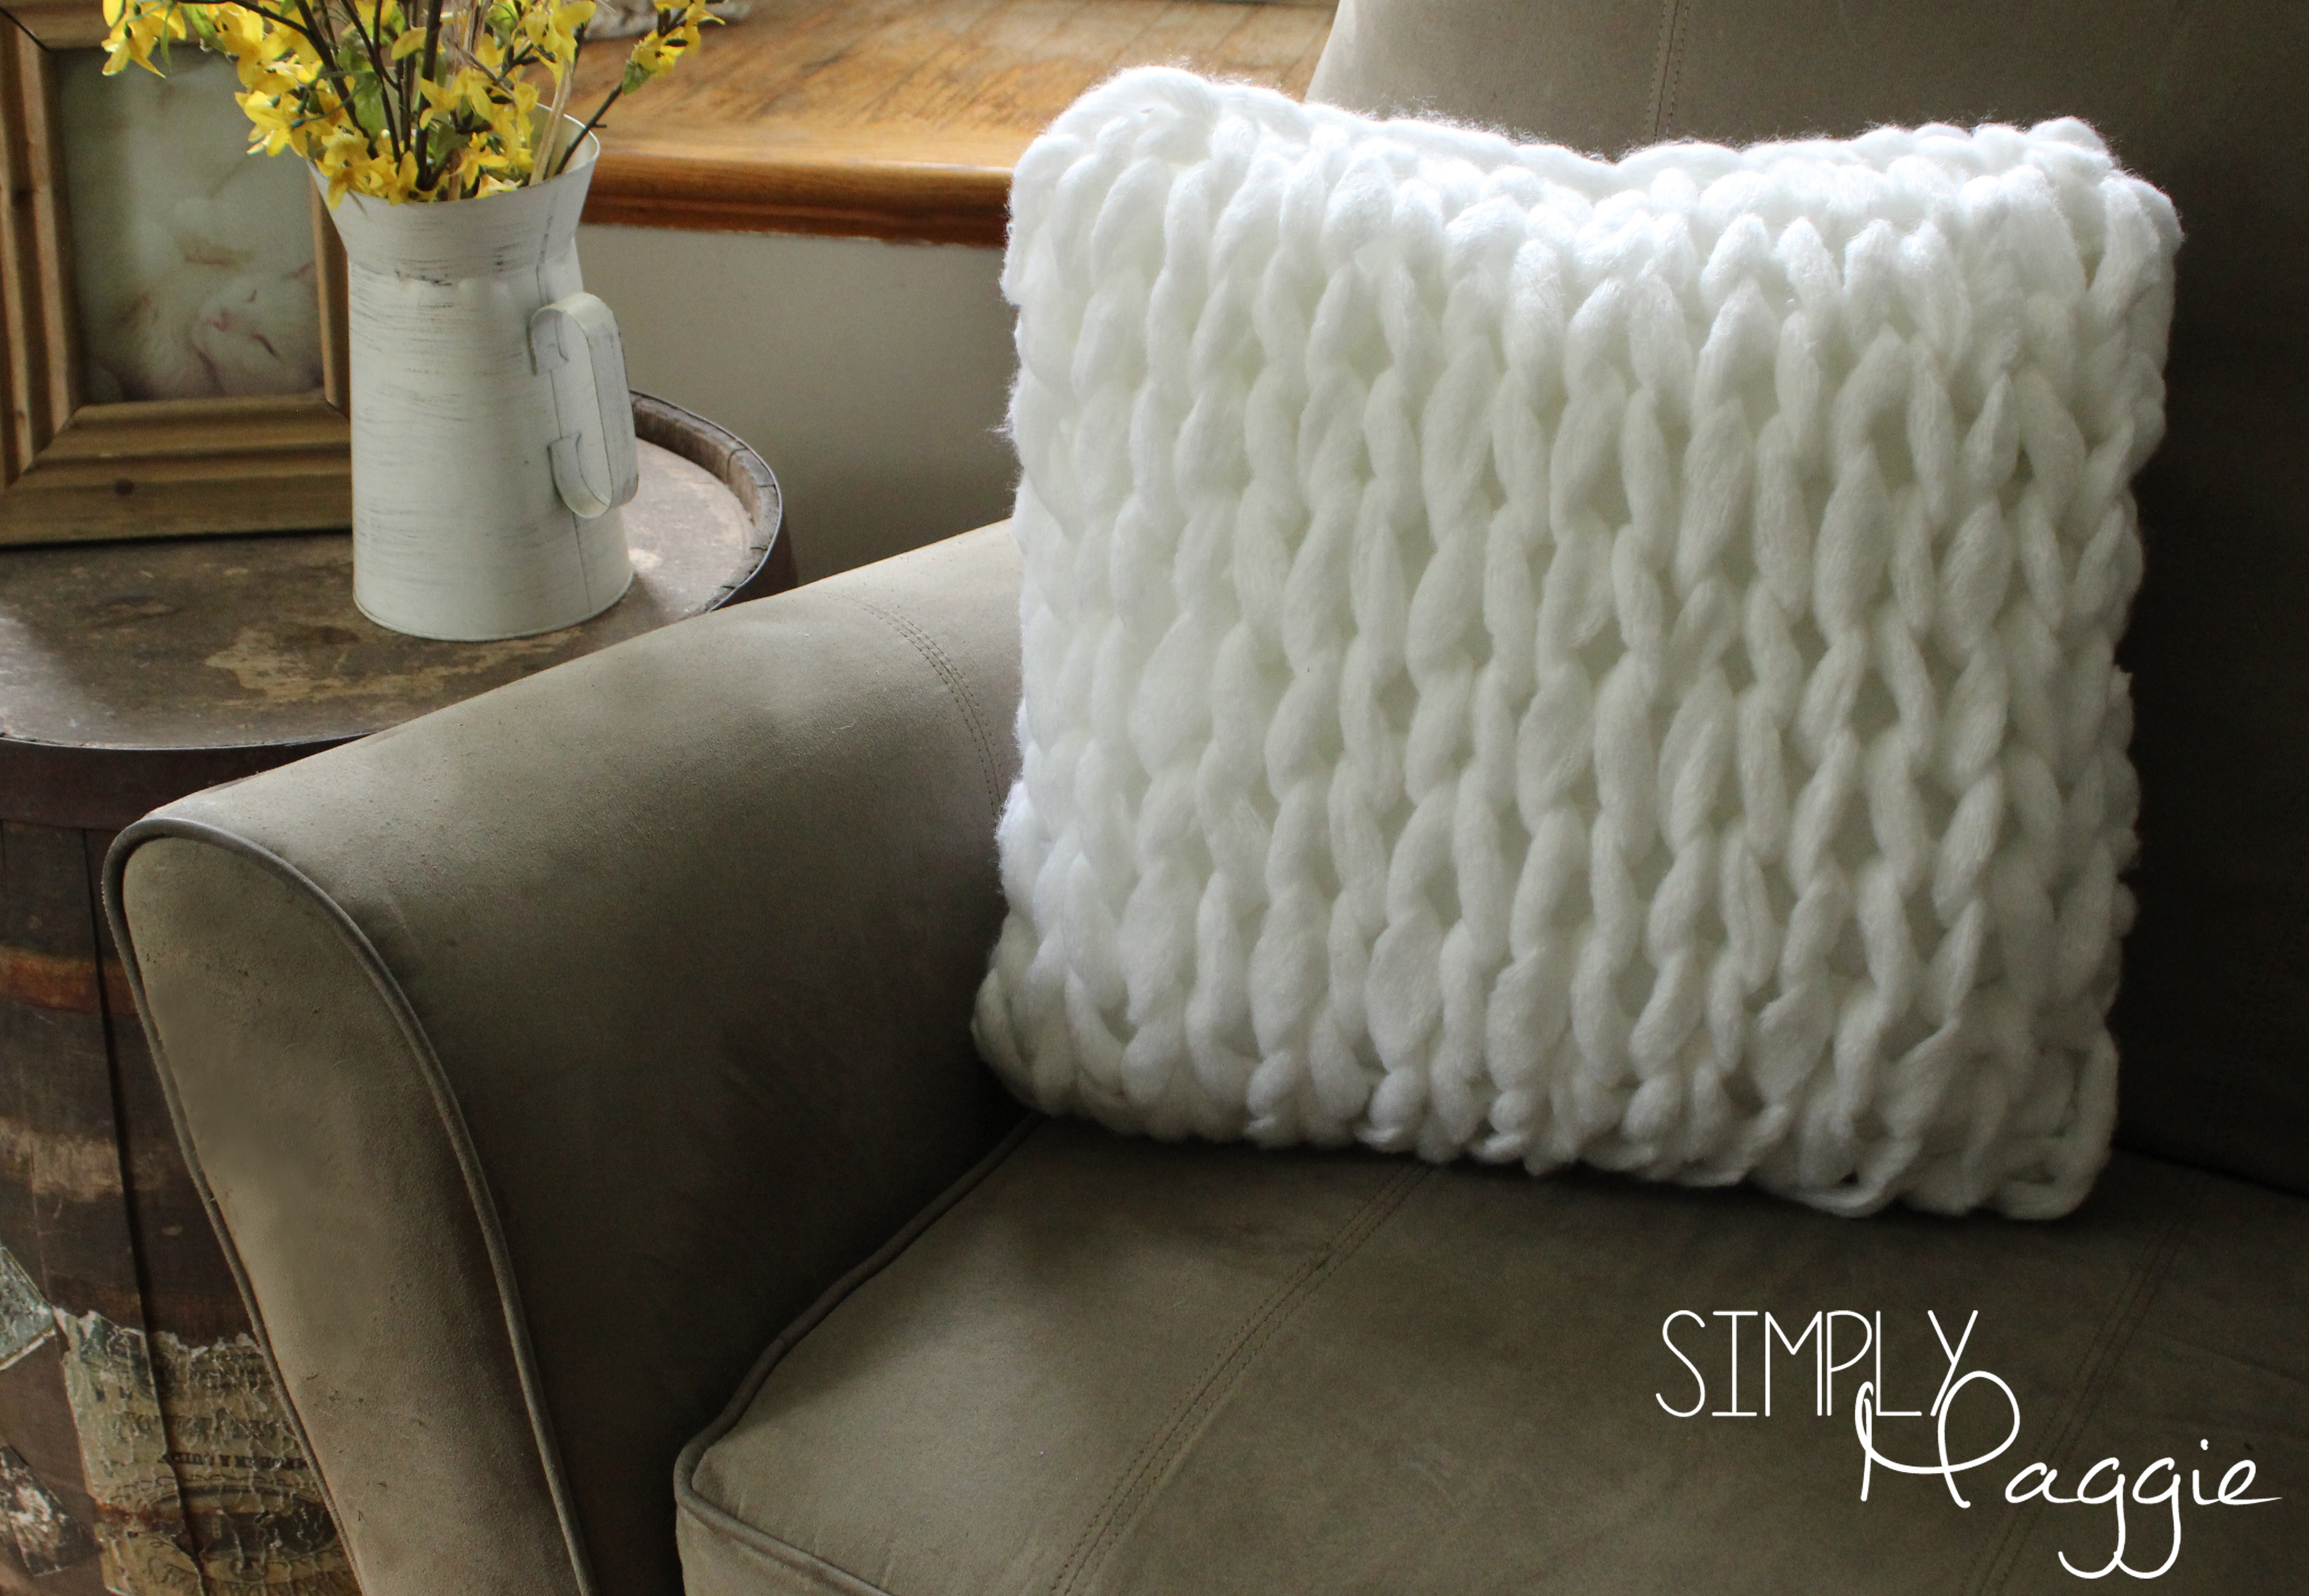 Free Cushion Cover Knitting Pattern One Hour Arm Knit Pillow Pattern Simply Maggie Simplymaggie